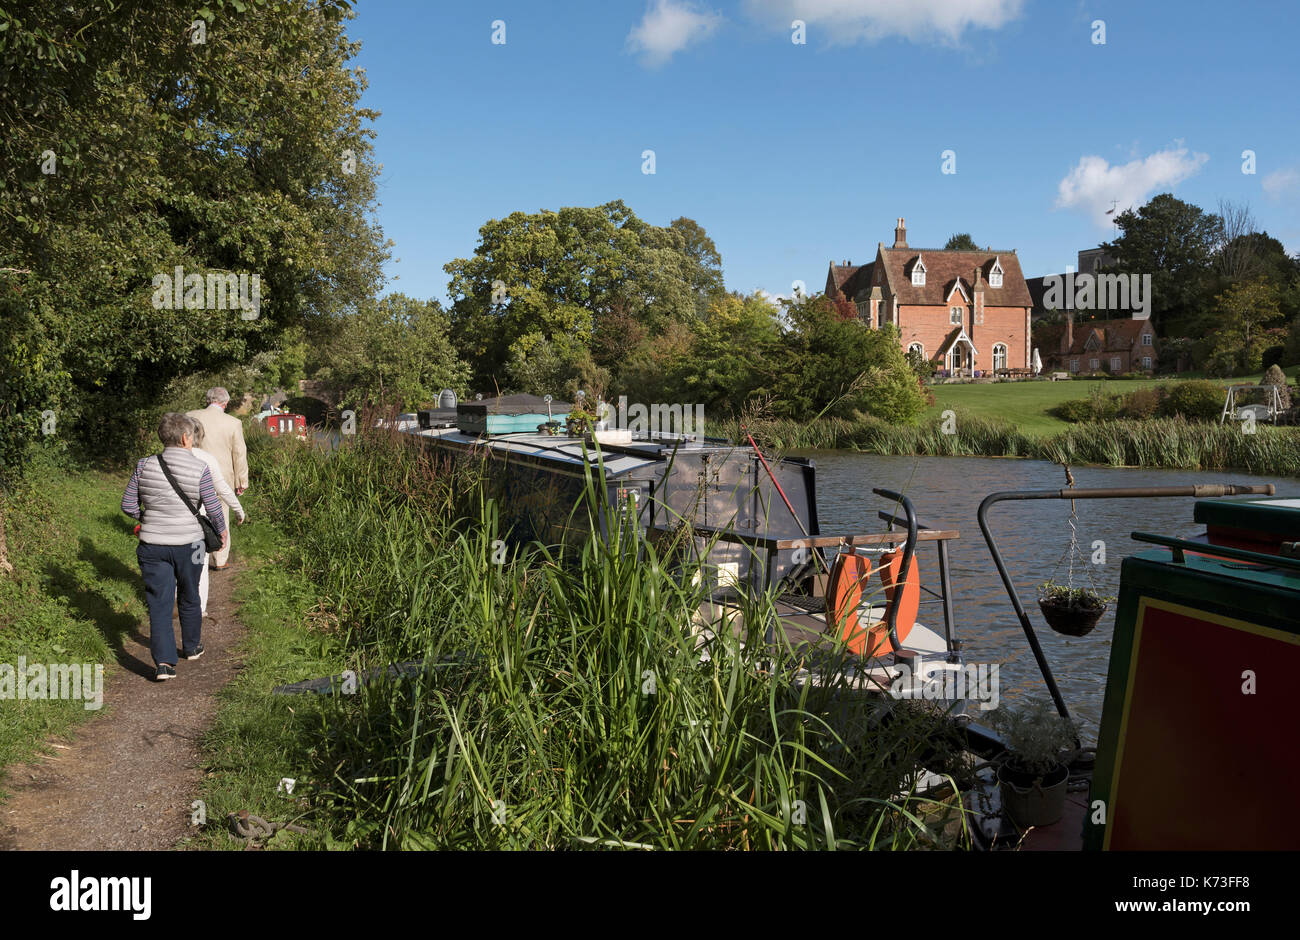 Kennet & Avon Canal at Kintbury Berkshire England UK. September 2017. People on the towpath - Stock Image